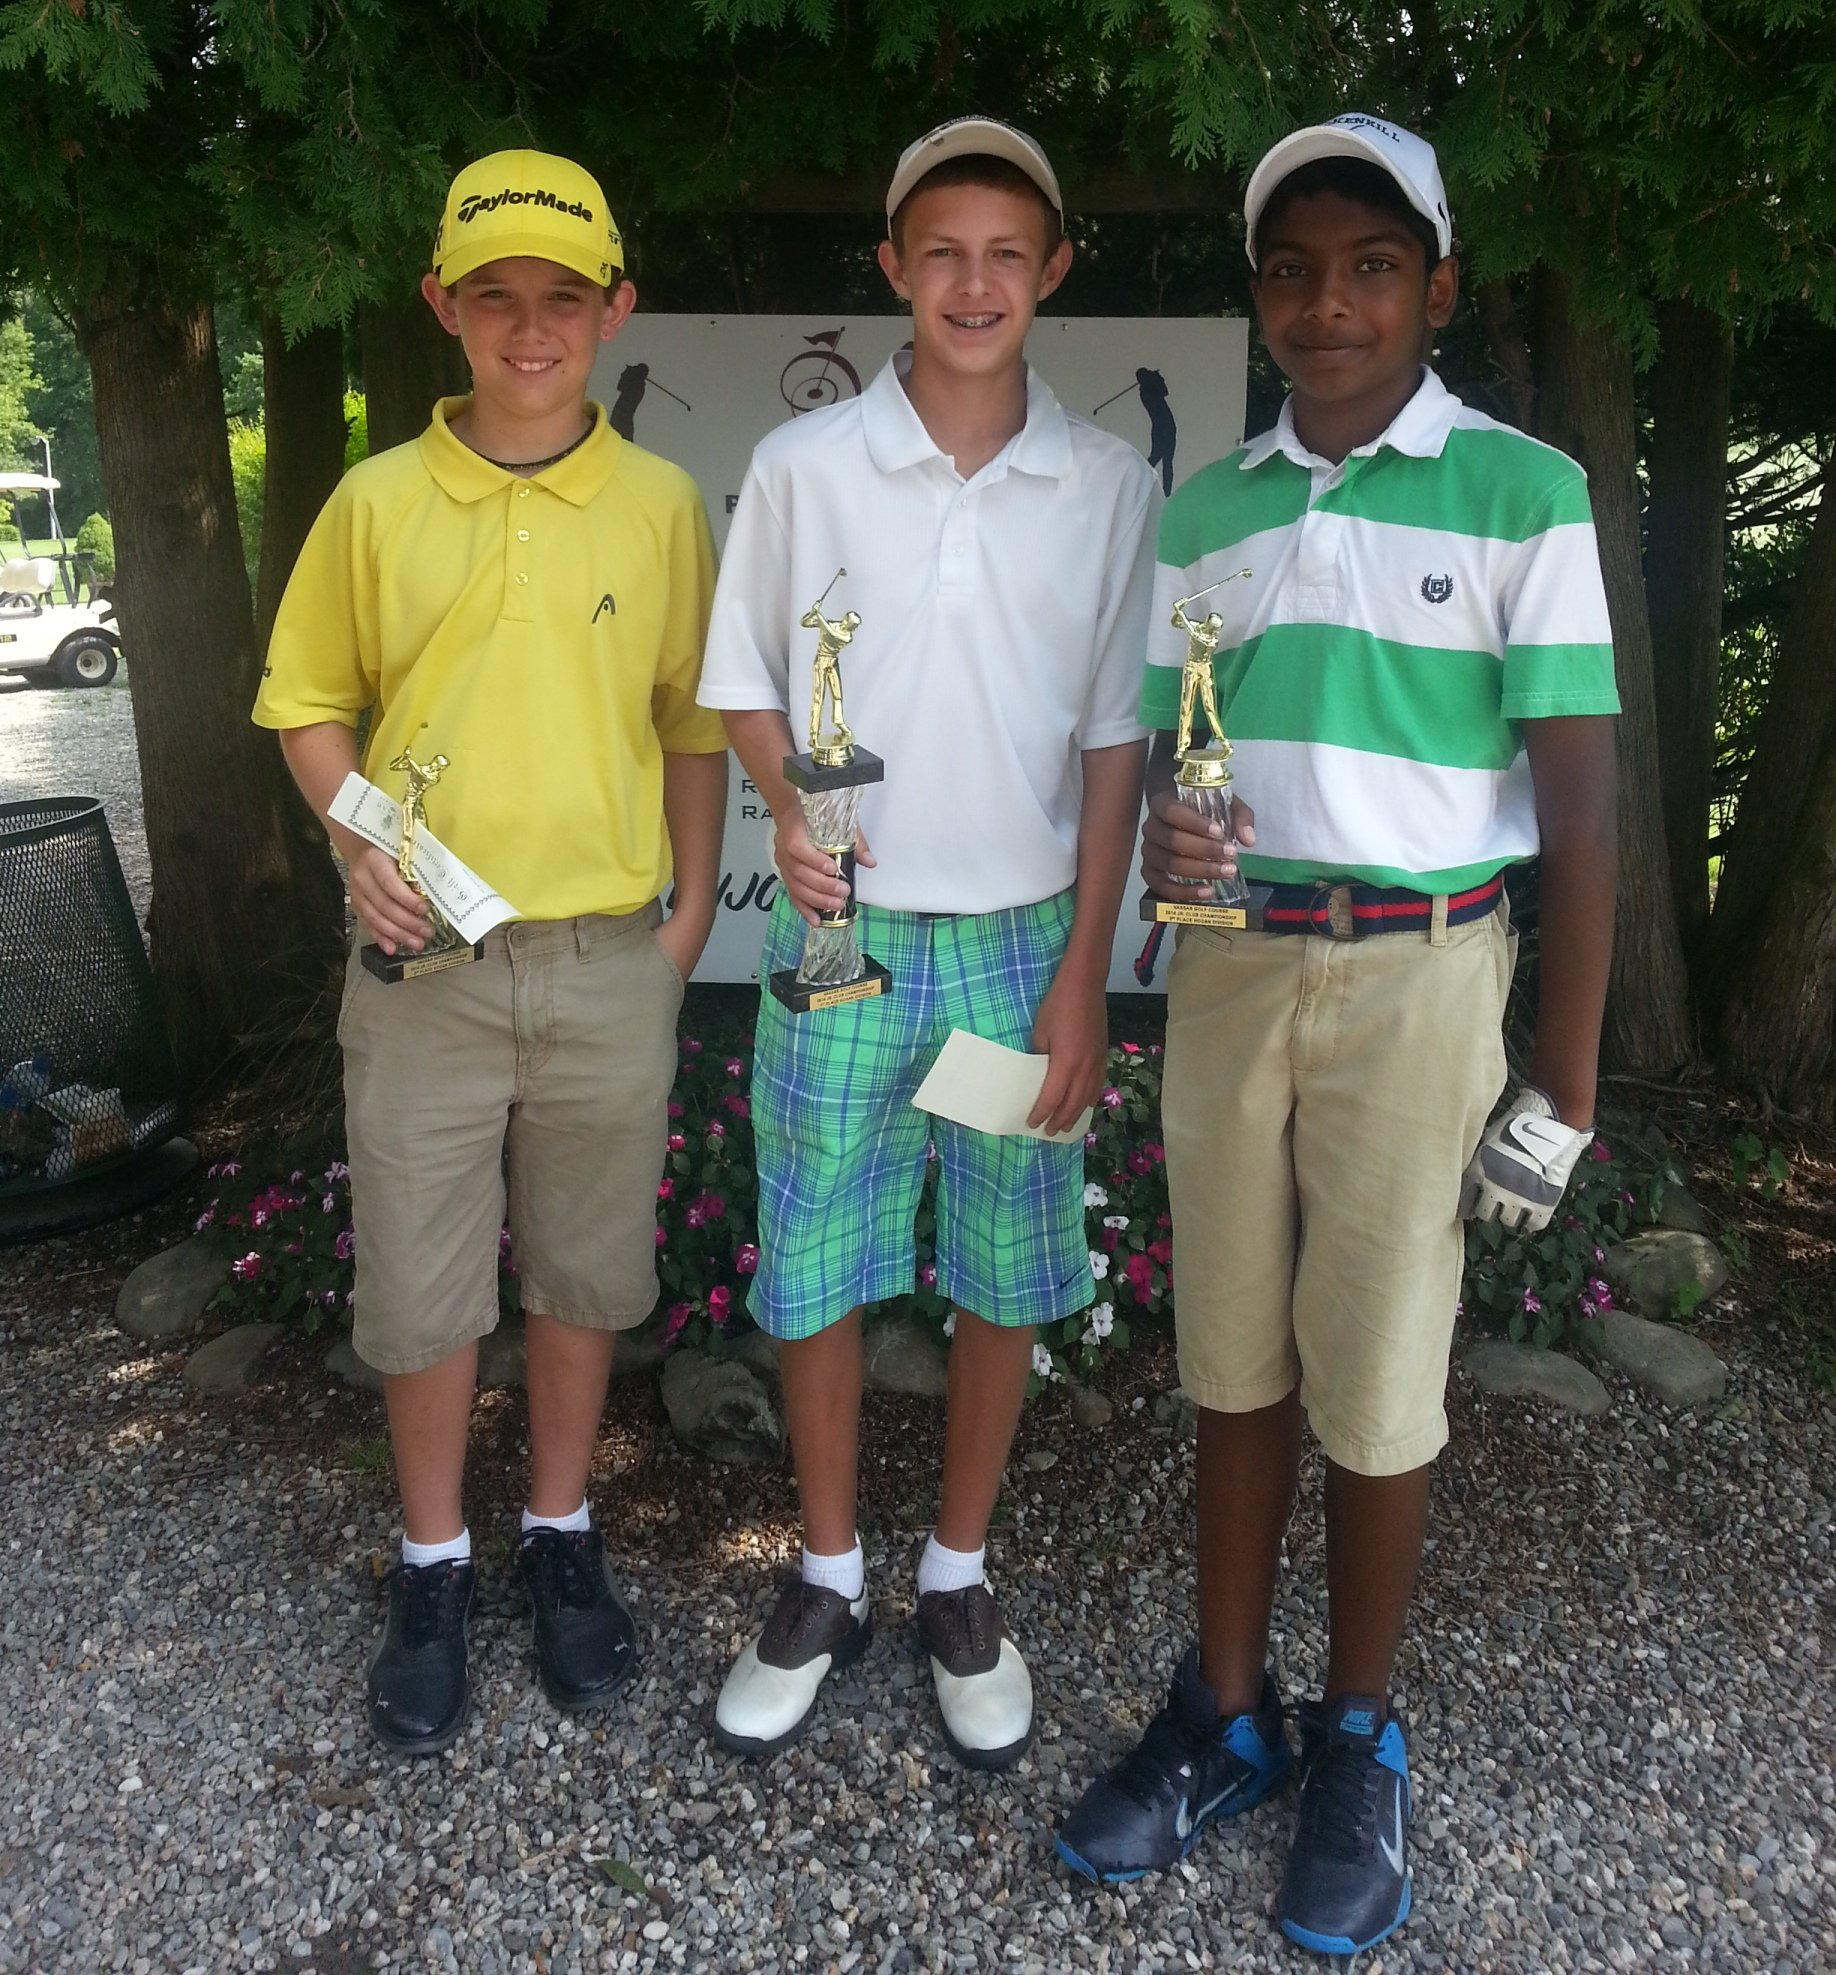 Junior Club Championship 2014 - Hogan Division